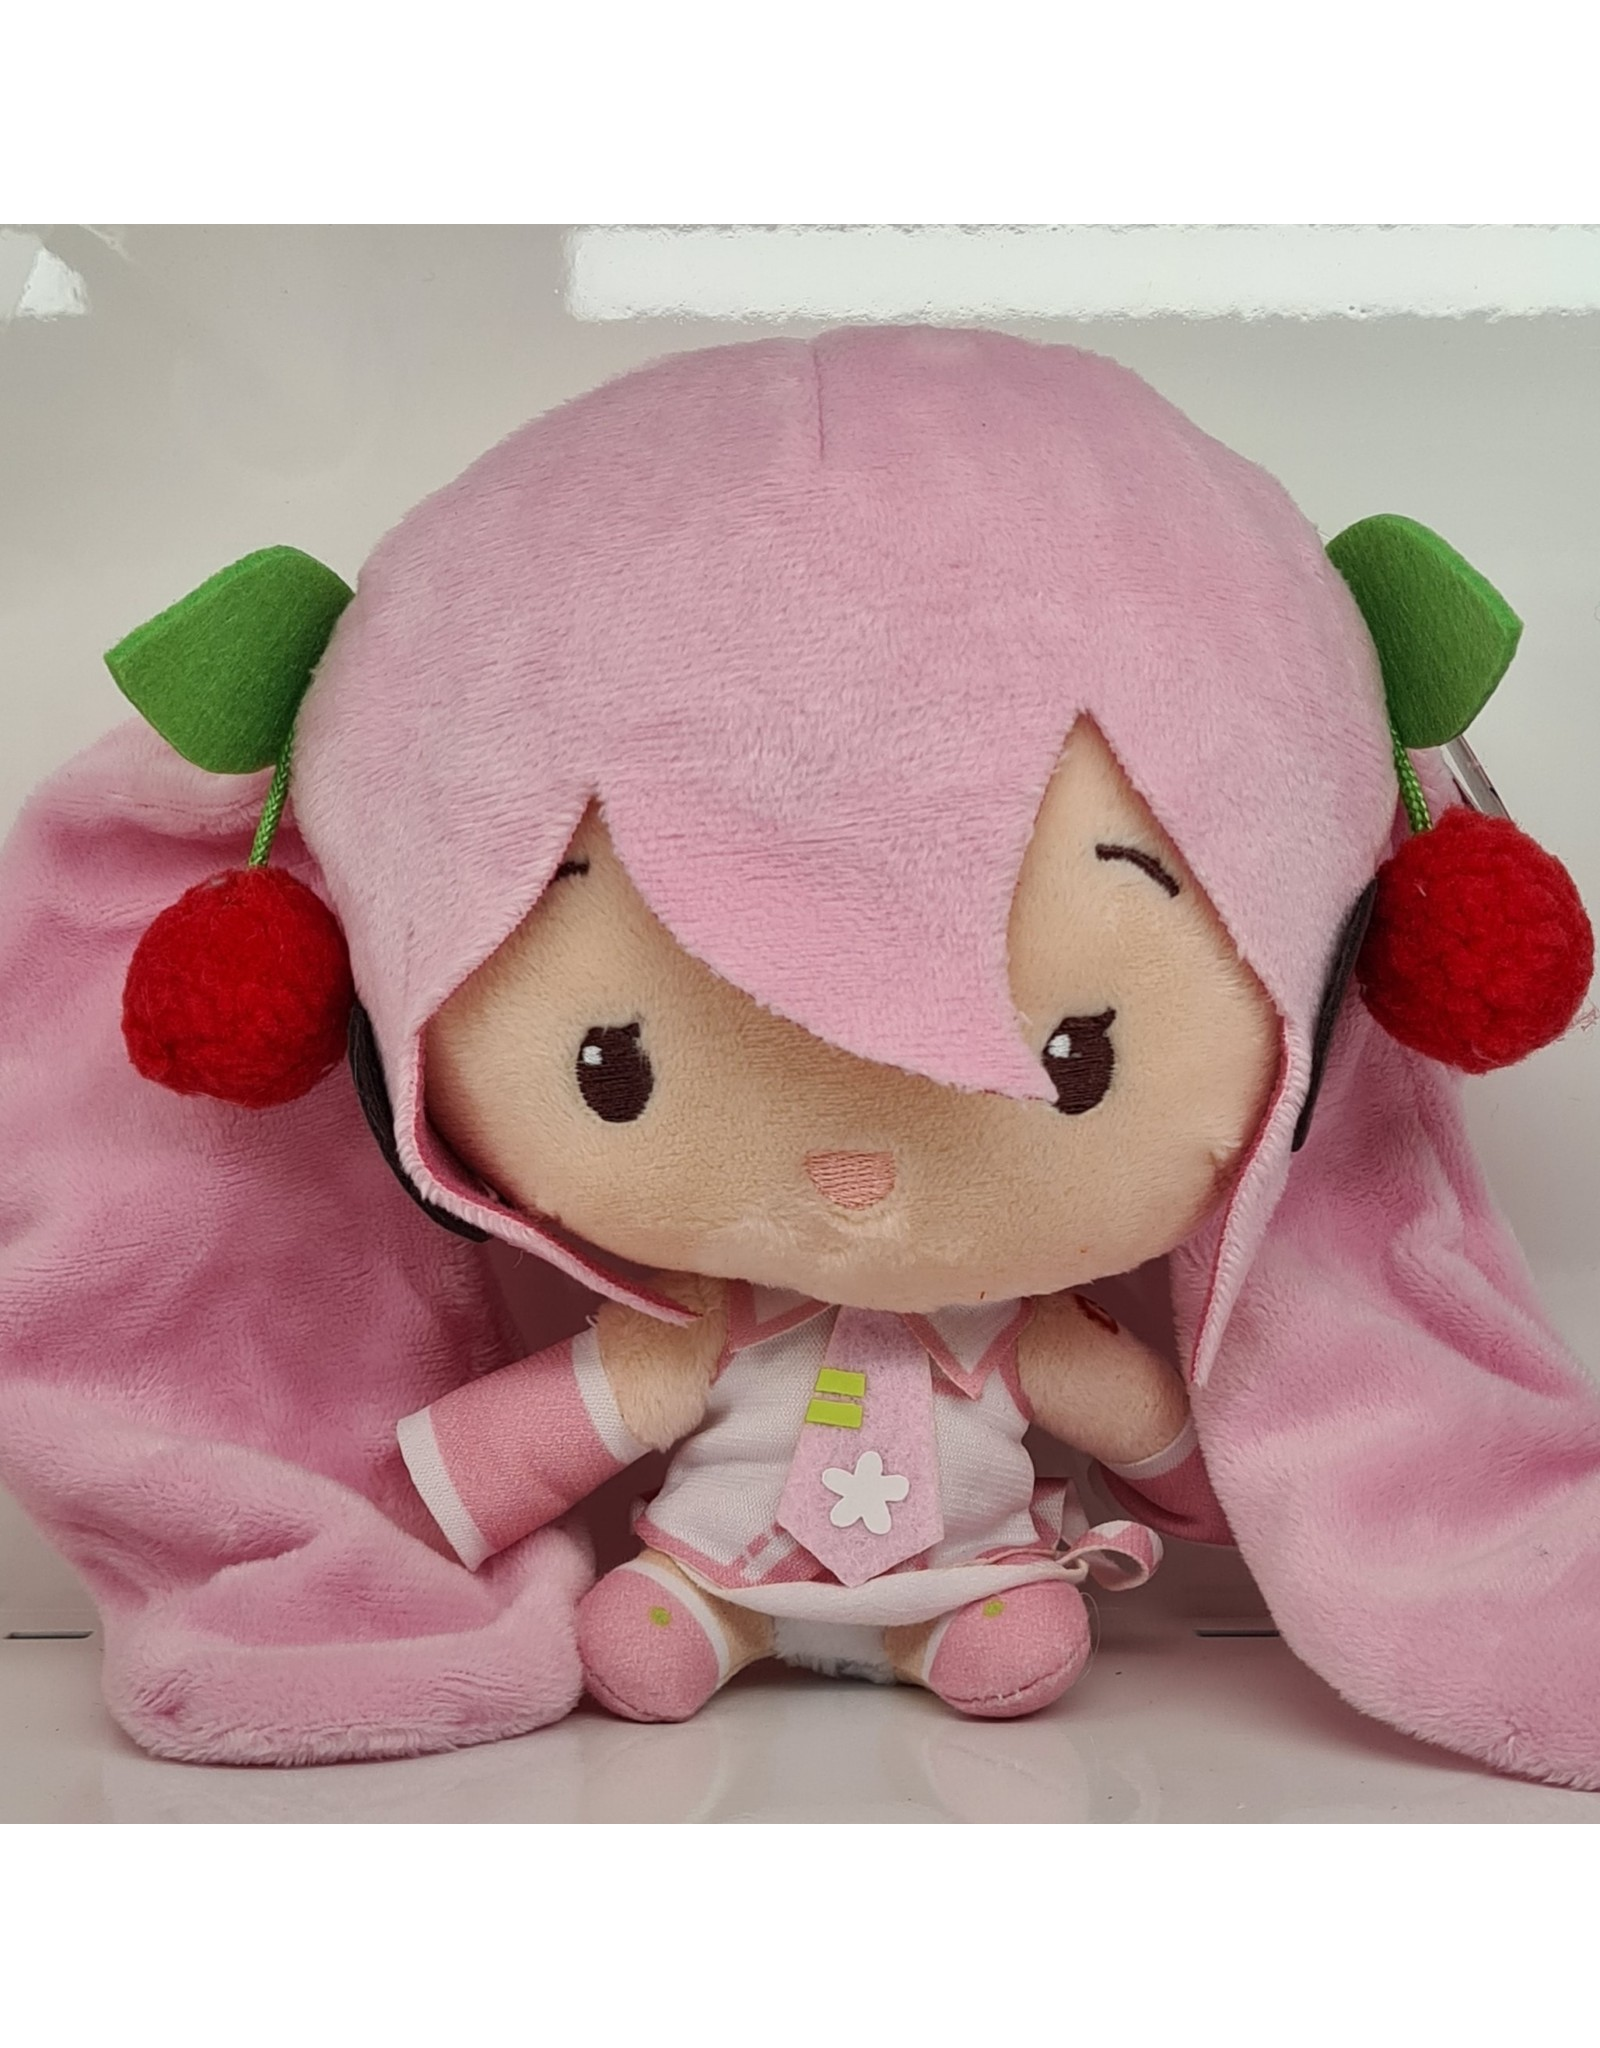 Hatsune Miku Cute Plush Sakura Miku Version - Eyes Open - 14 cm